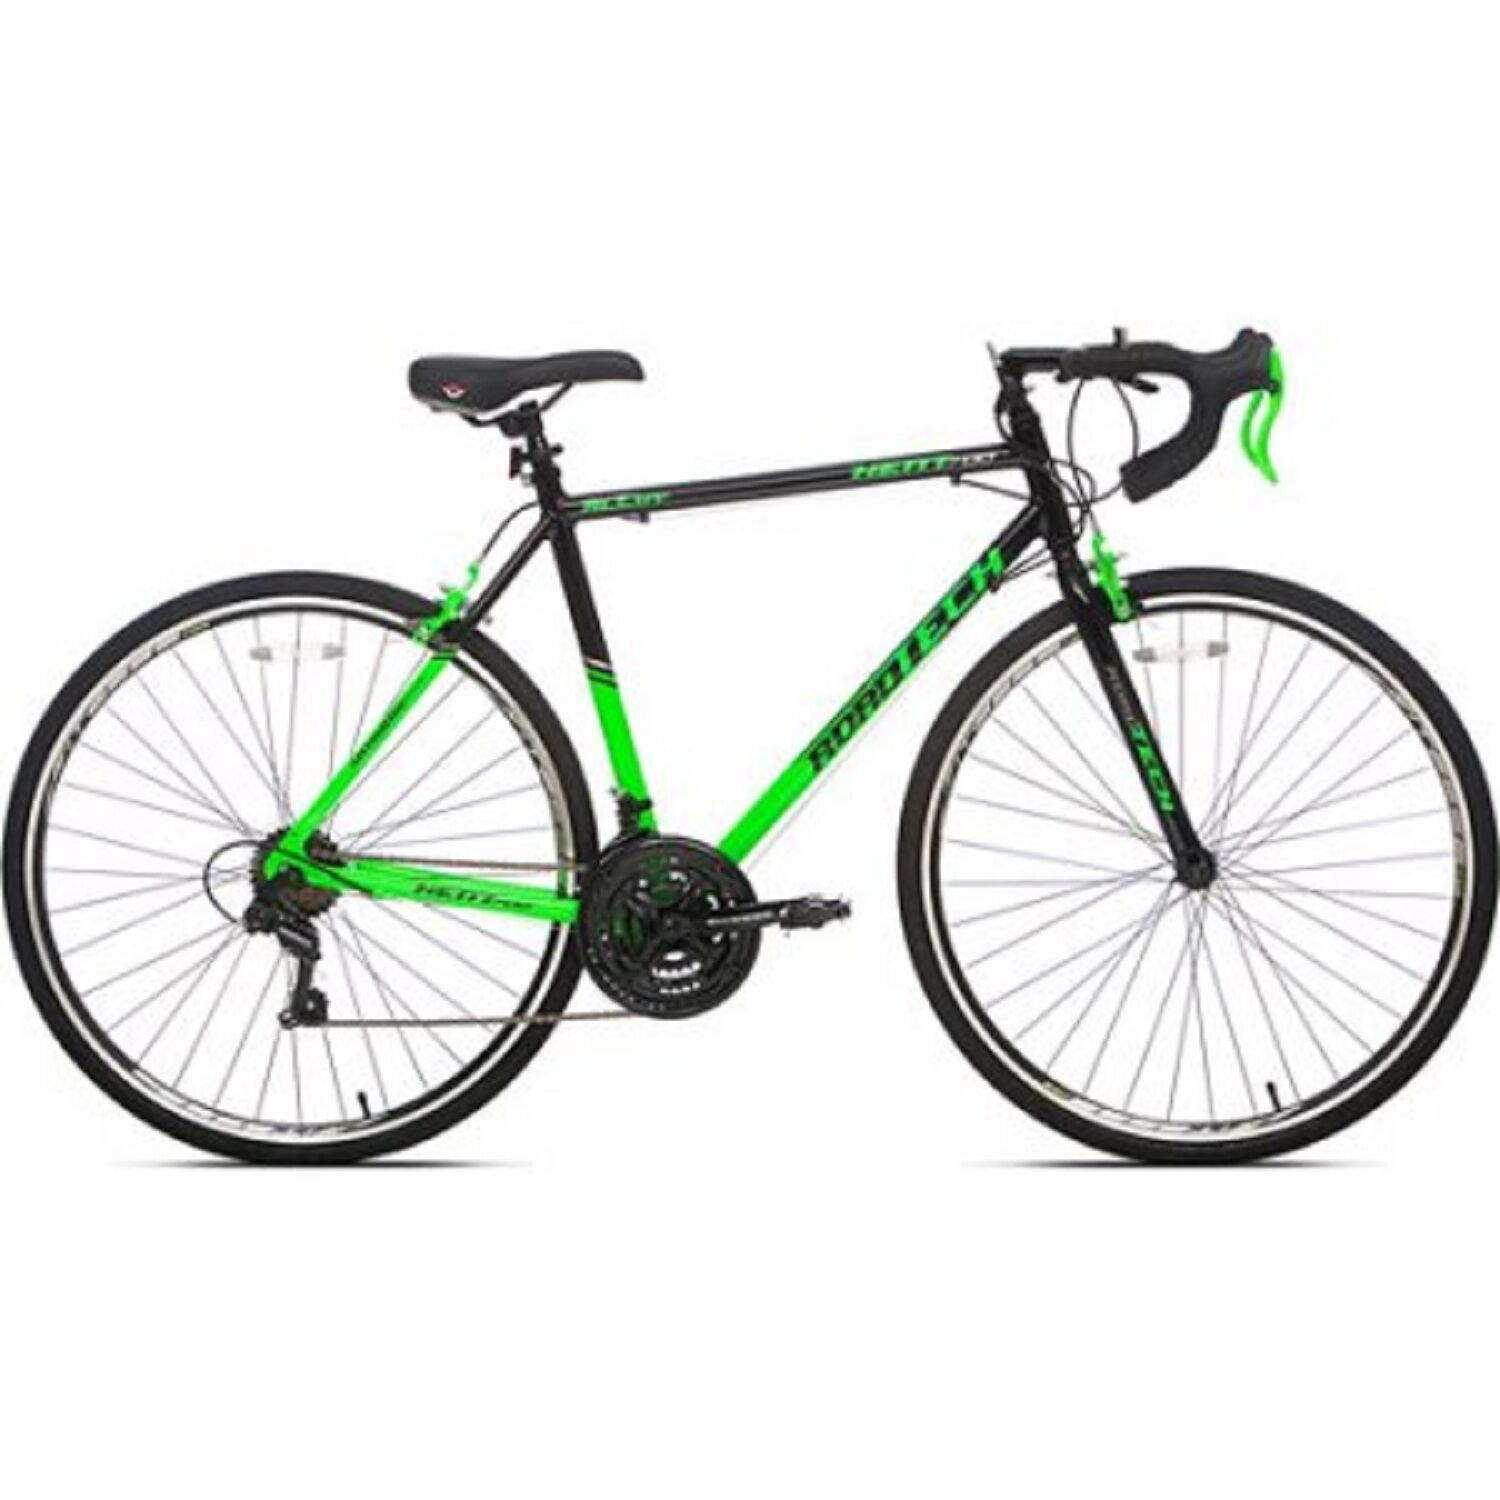 Comfort Bikes For Men Giant Road Adult Boys Bicycle 21 Speed Steel Frame Riding